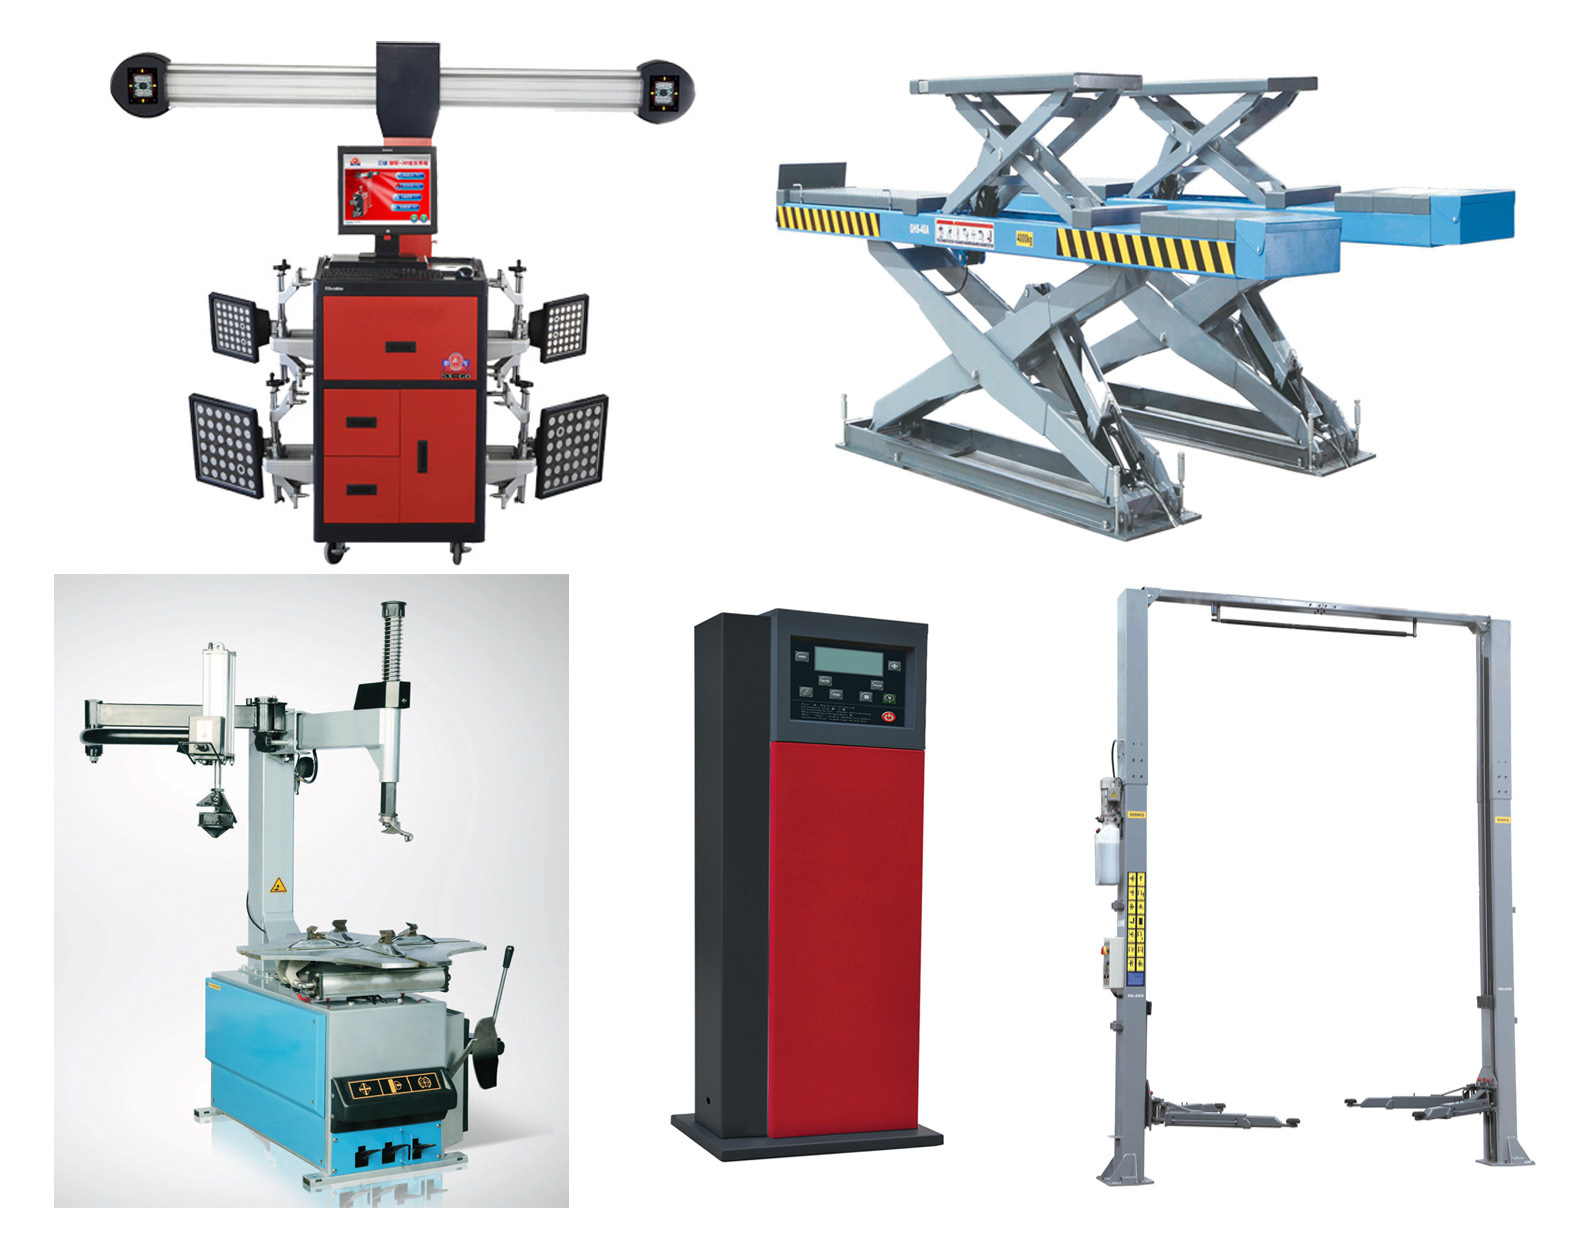 Tire Changer / Two (2) Post Lift/Car Lift / Wheel Balancer / Wheel Alignment (Aligner) /Nitrogen Inflator